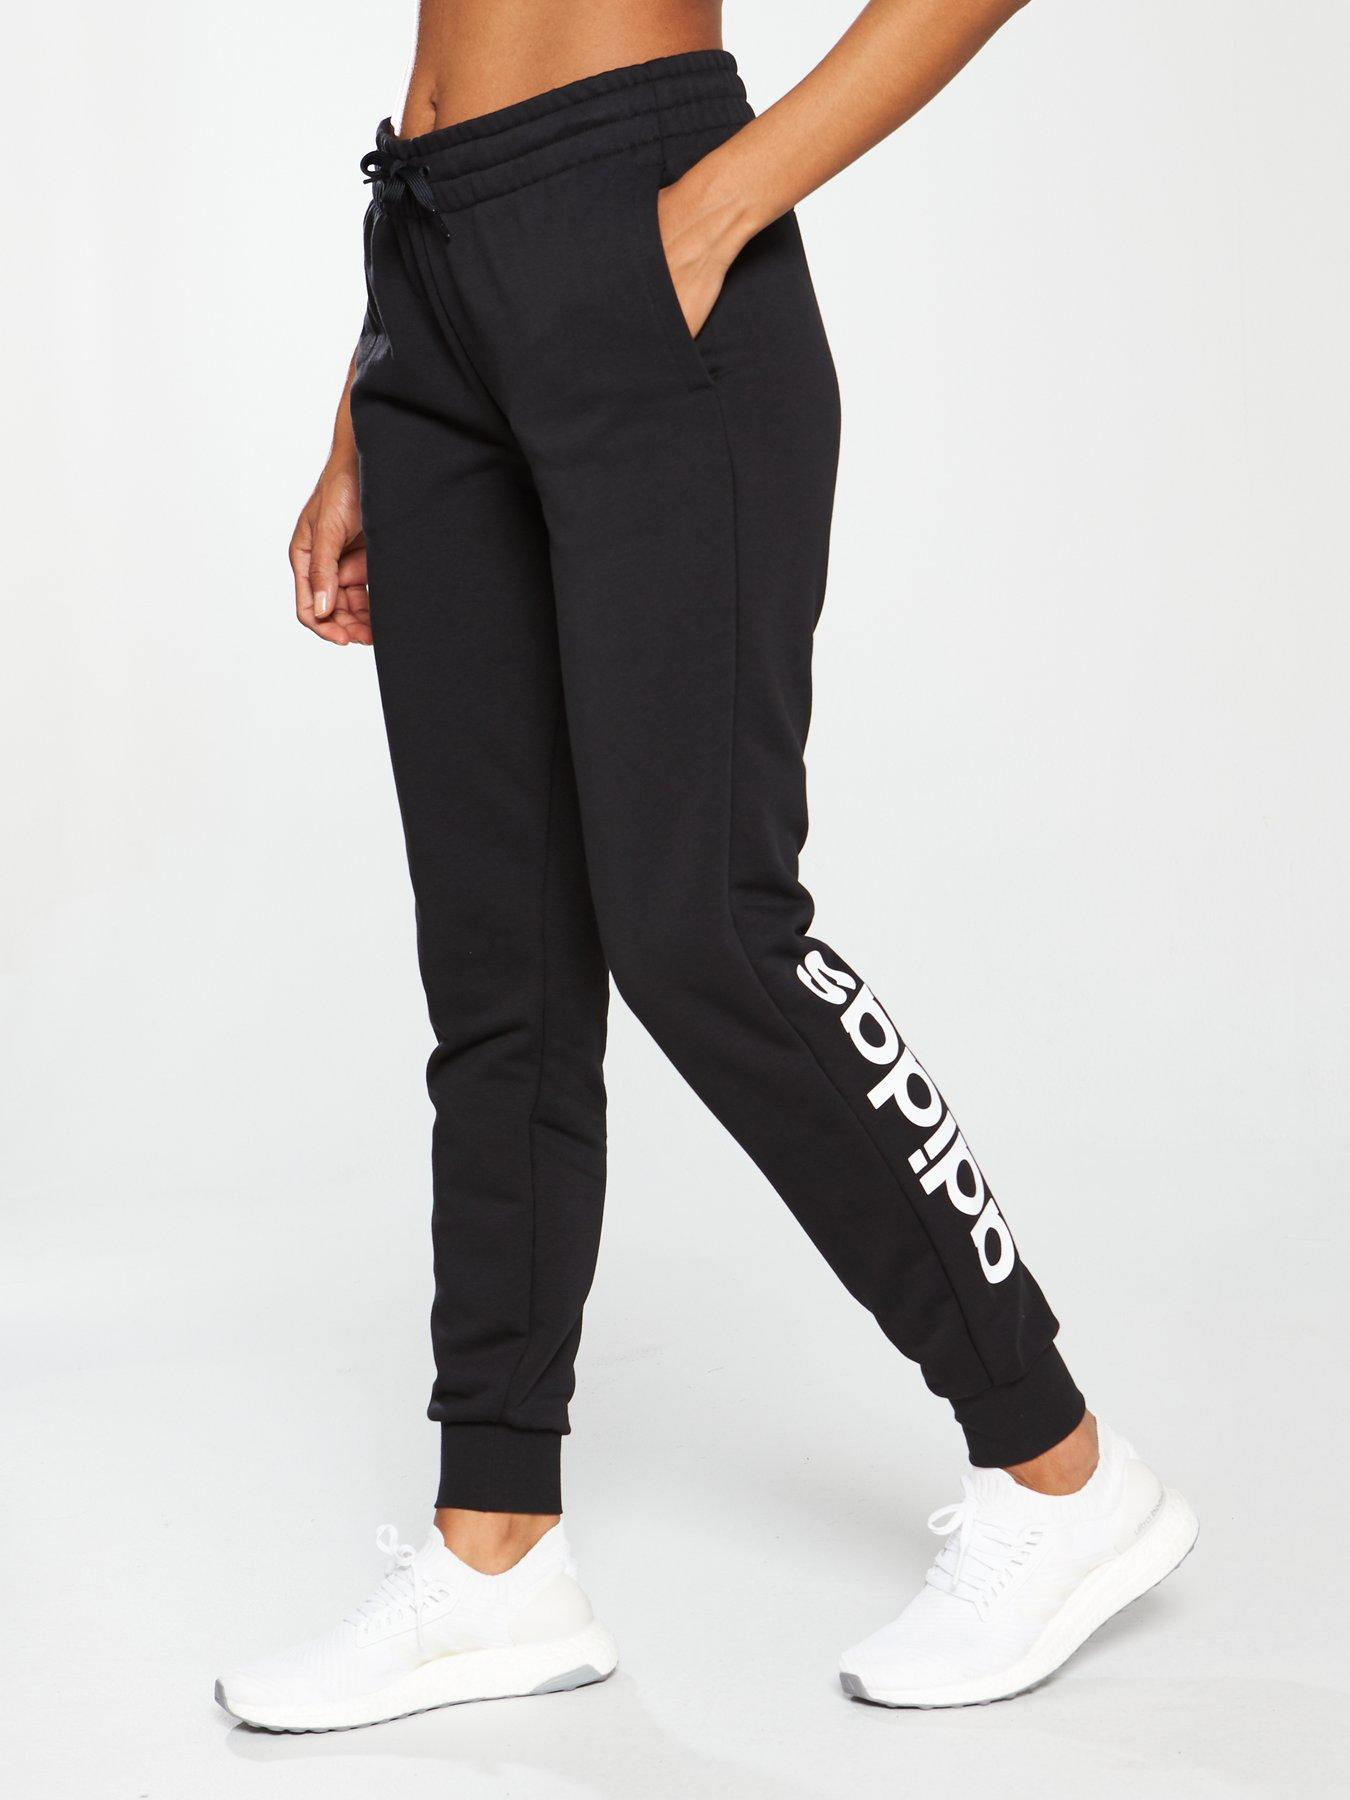 adidas slim fit joggers womens